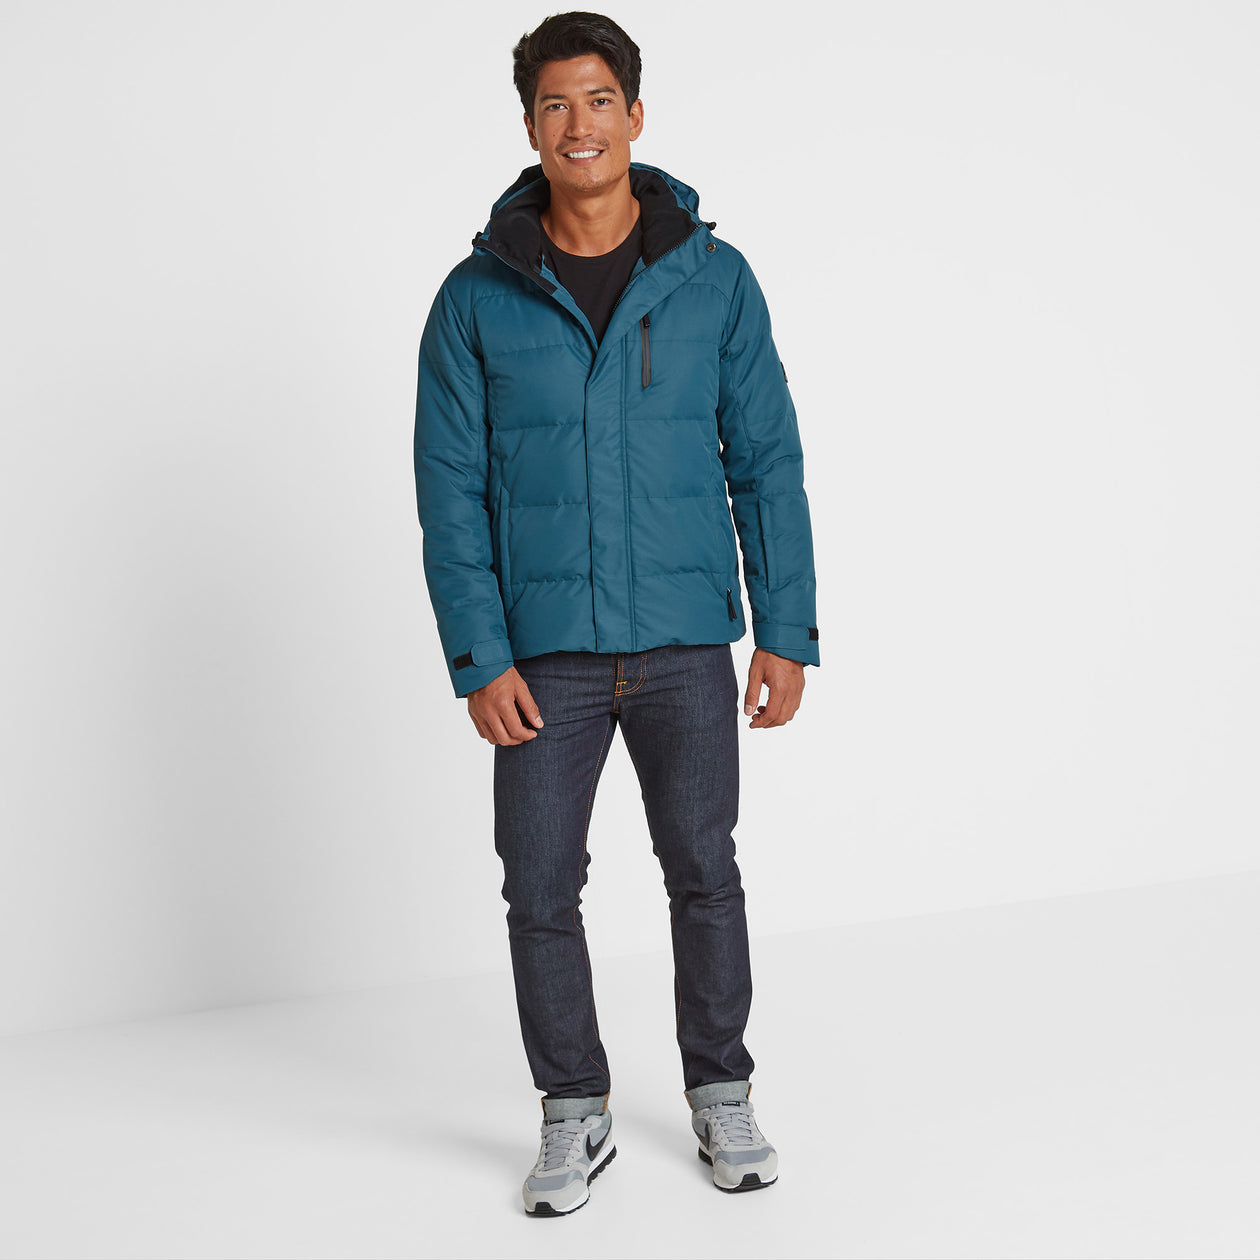 Gunby Mens Winter Jacket - Lagoon image 4